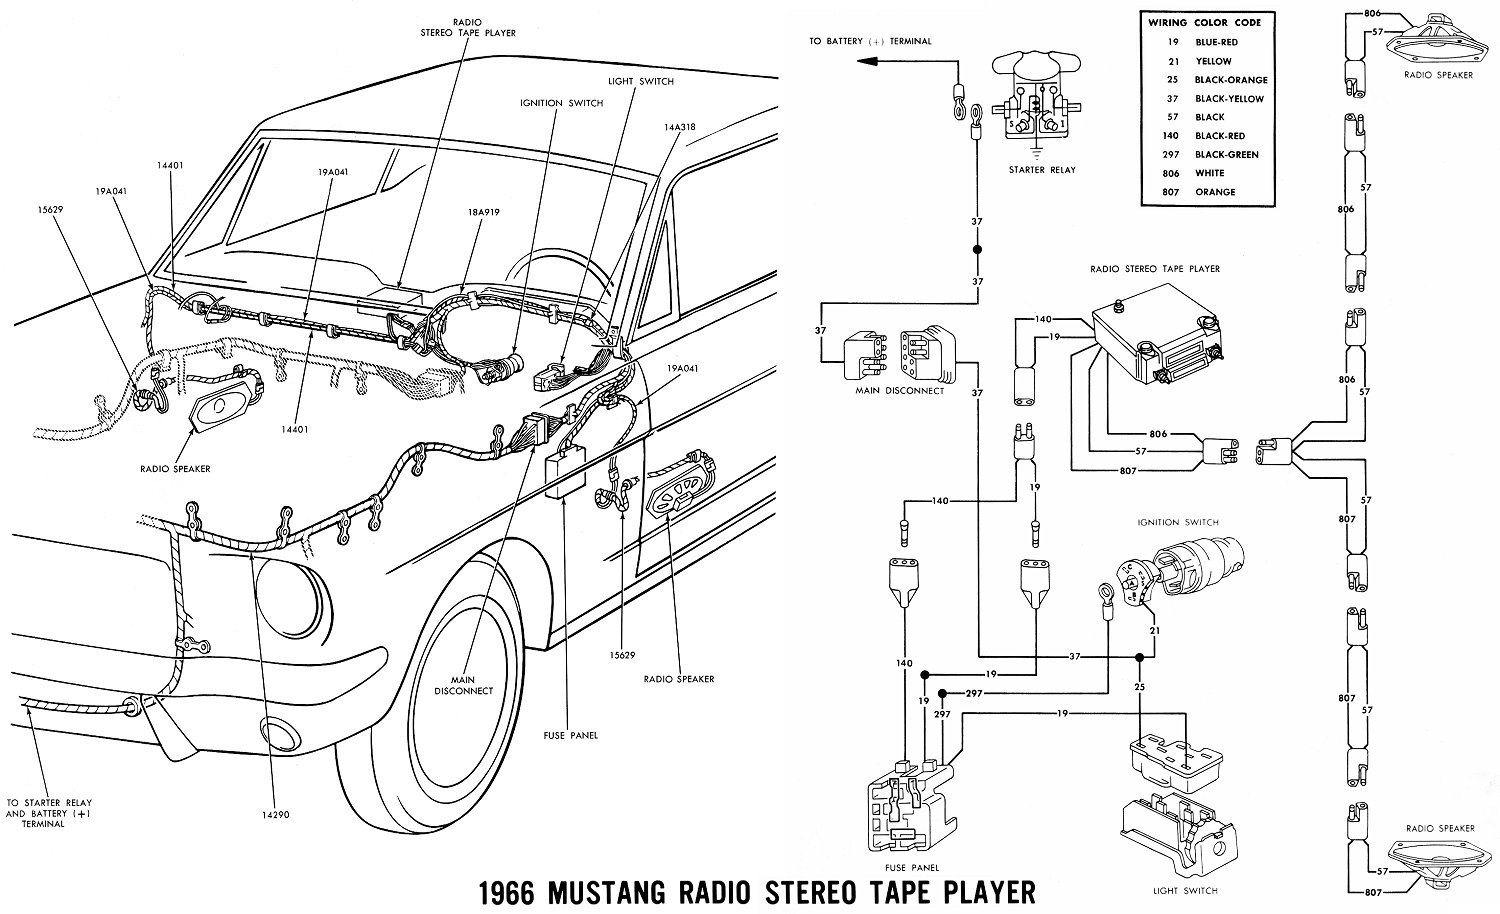 1966 Mustang Wiring Diagrams Average Joe Restoration 2007 Fuse Panel Diagram Sm66ste